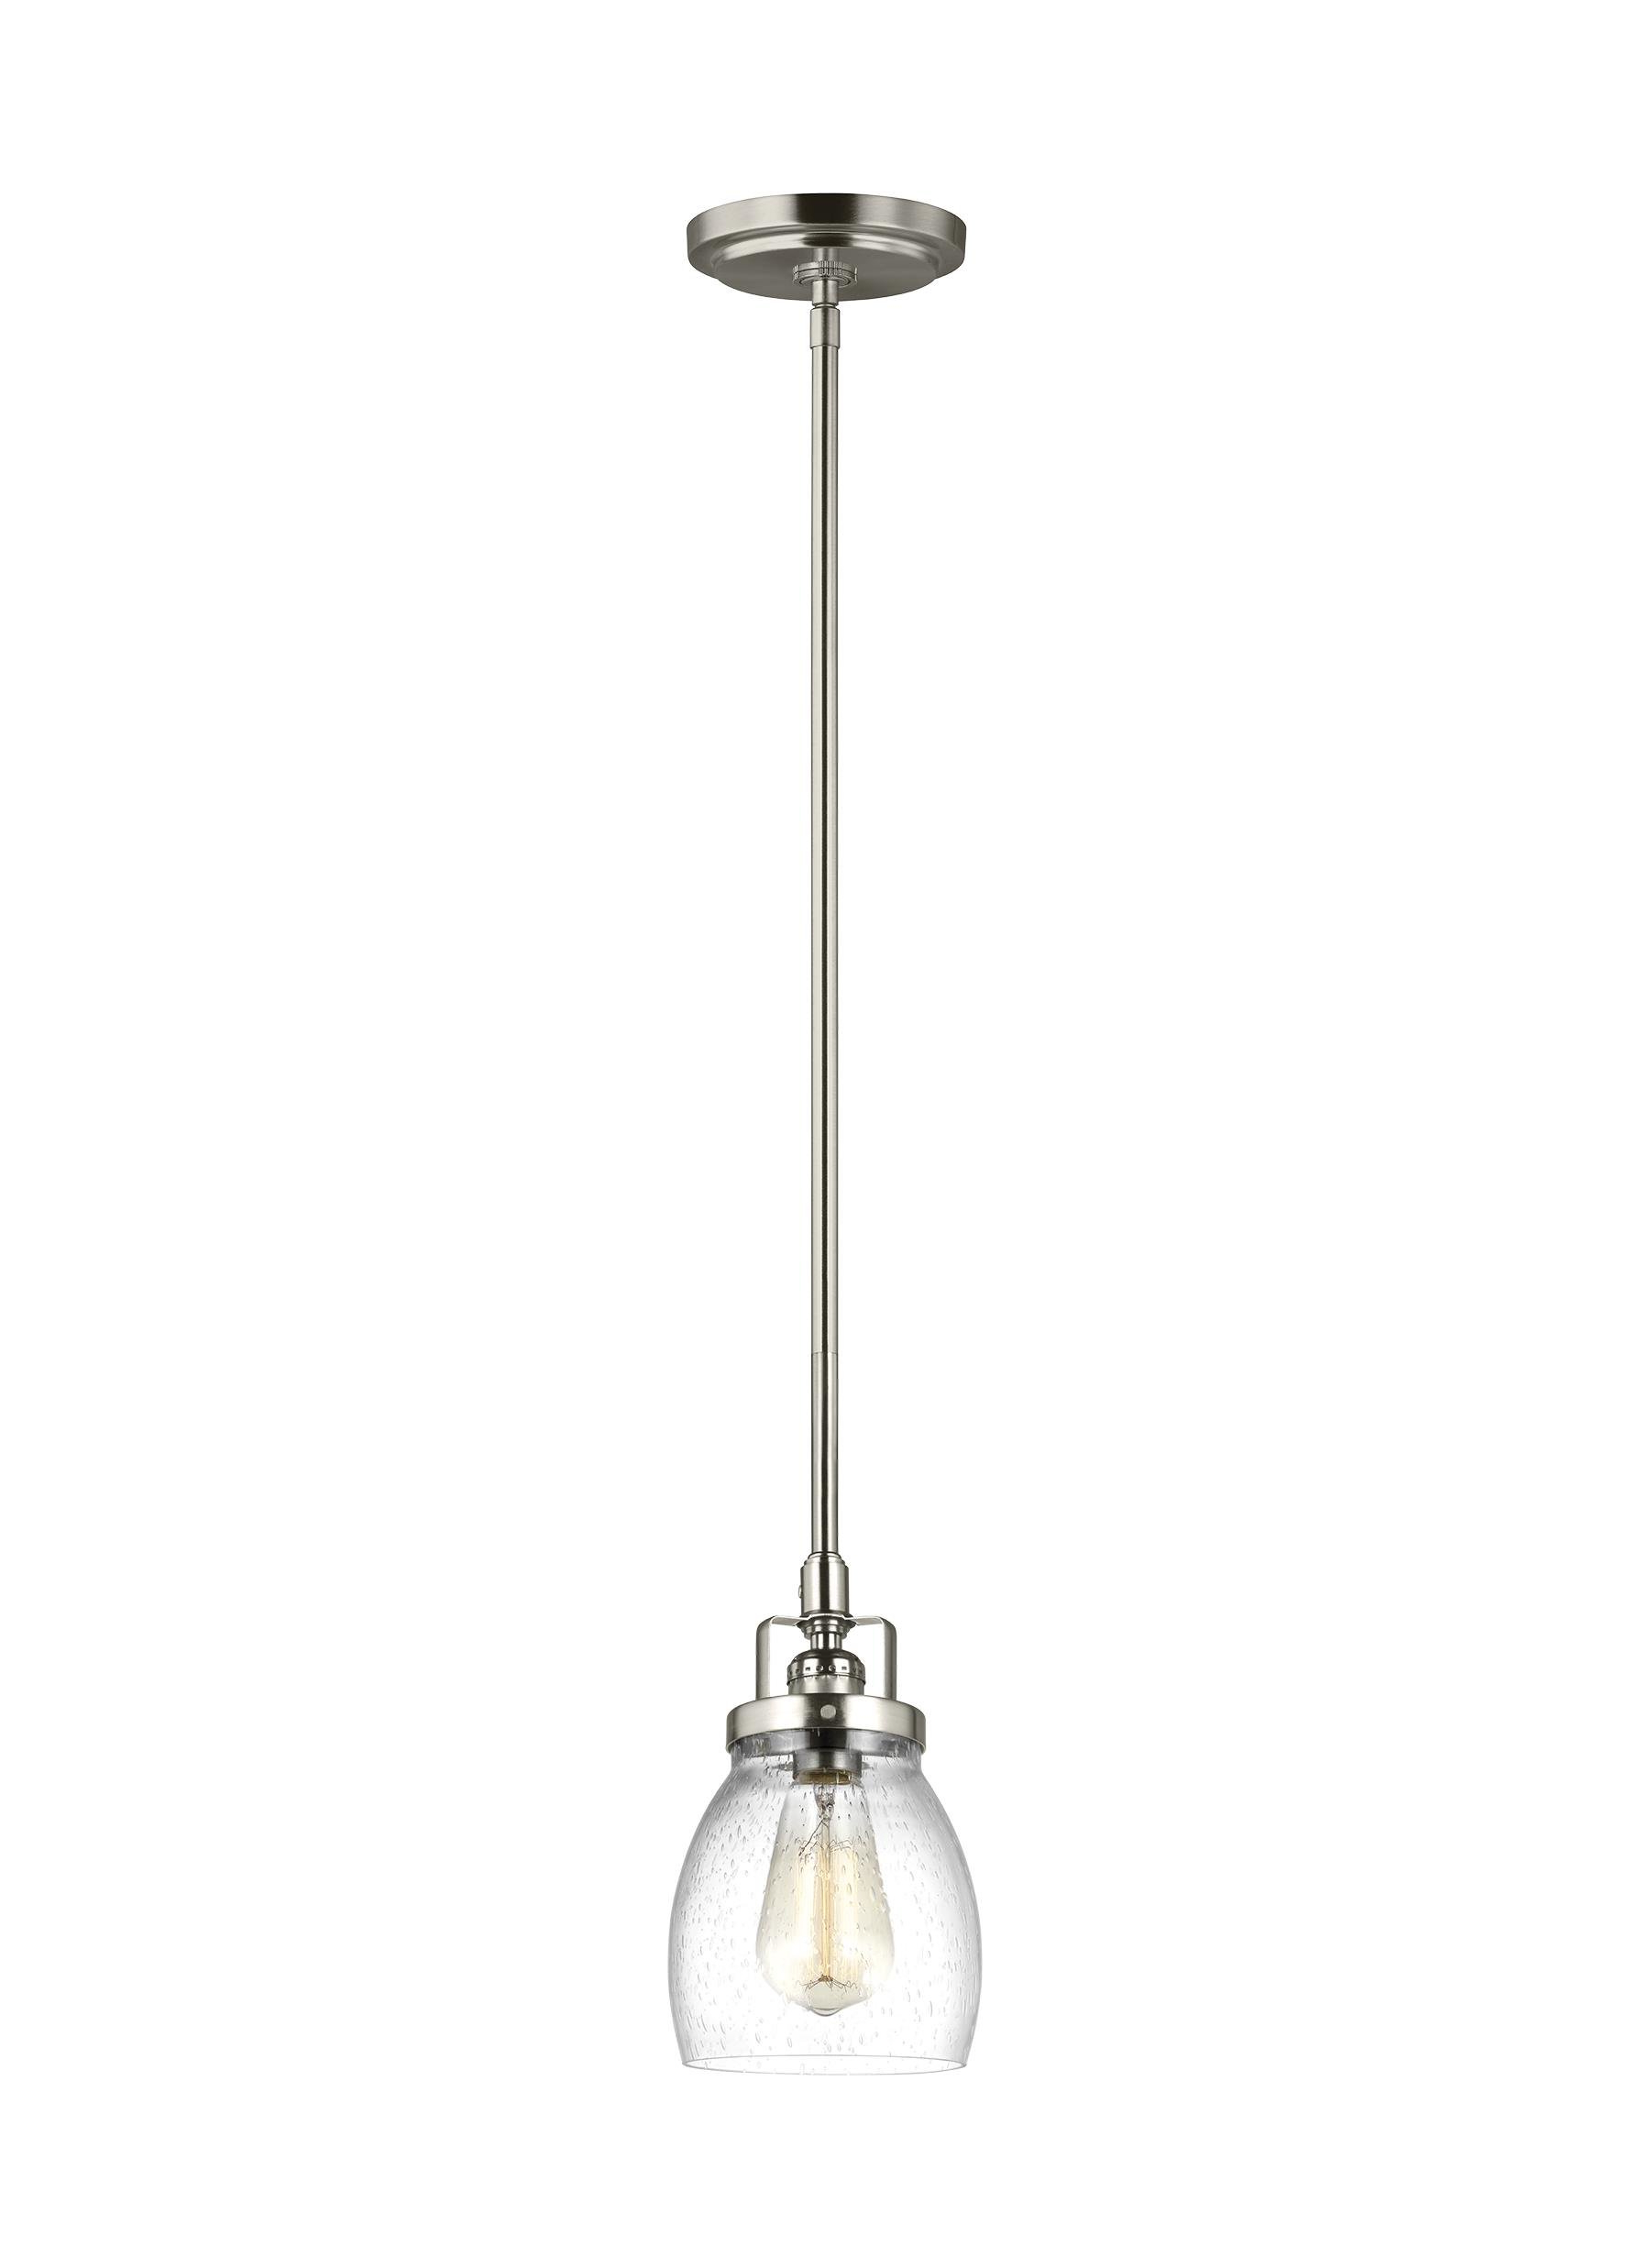 Erico 1 Light Single Bell Pendants With Most Recent Houon 1 Light Cone Bell Pendant (View 6 of 20)